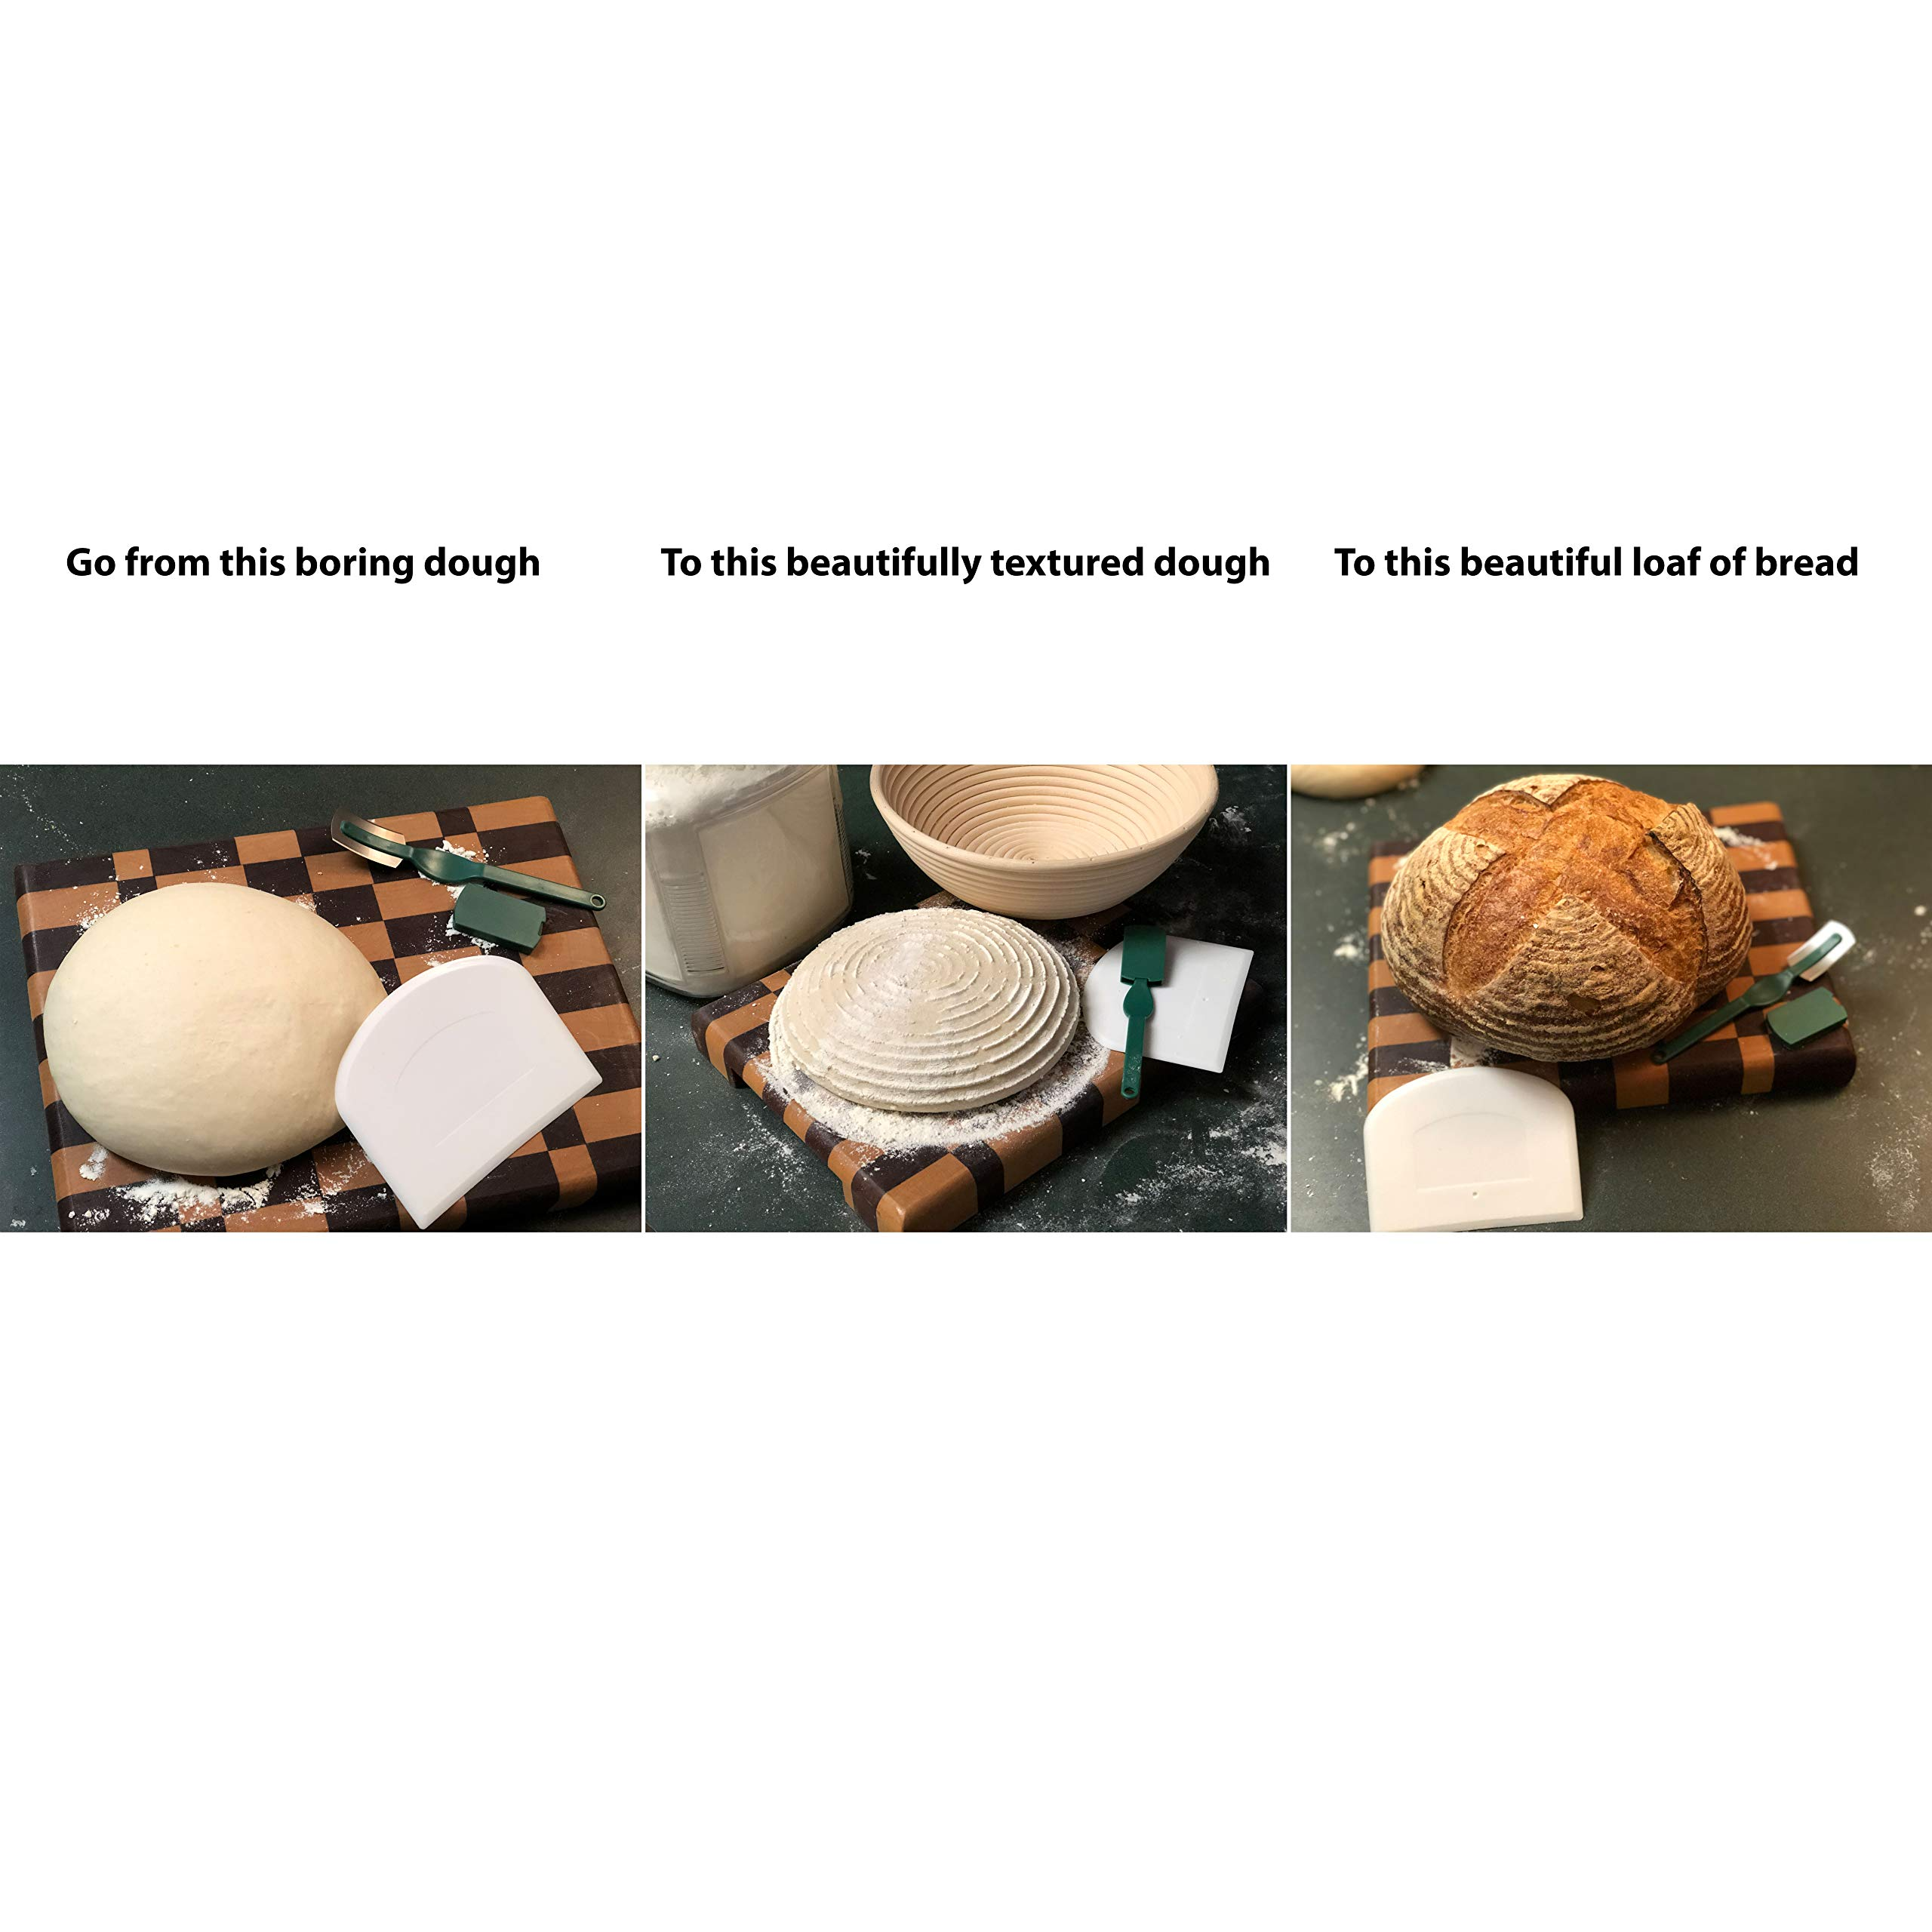 Make Beautiful Sourdough Bread with Baker's Reserve Ultimate Bread Baking Kit - Kit Includes Round 9 inch Banneton, Linen Liner, Dough Scraper and Dough Lame - Perfect for Making Rustic, Artisan Bread by Baker's Reserve (Image #3)